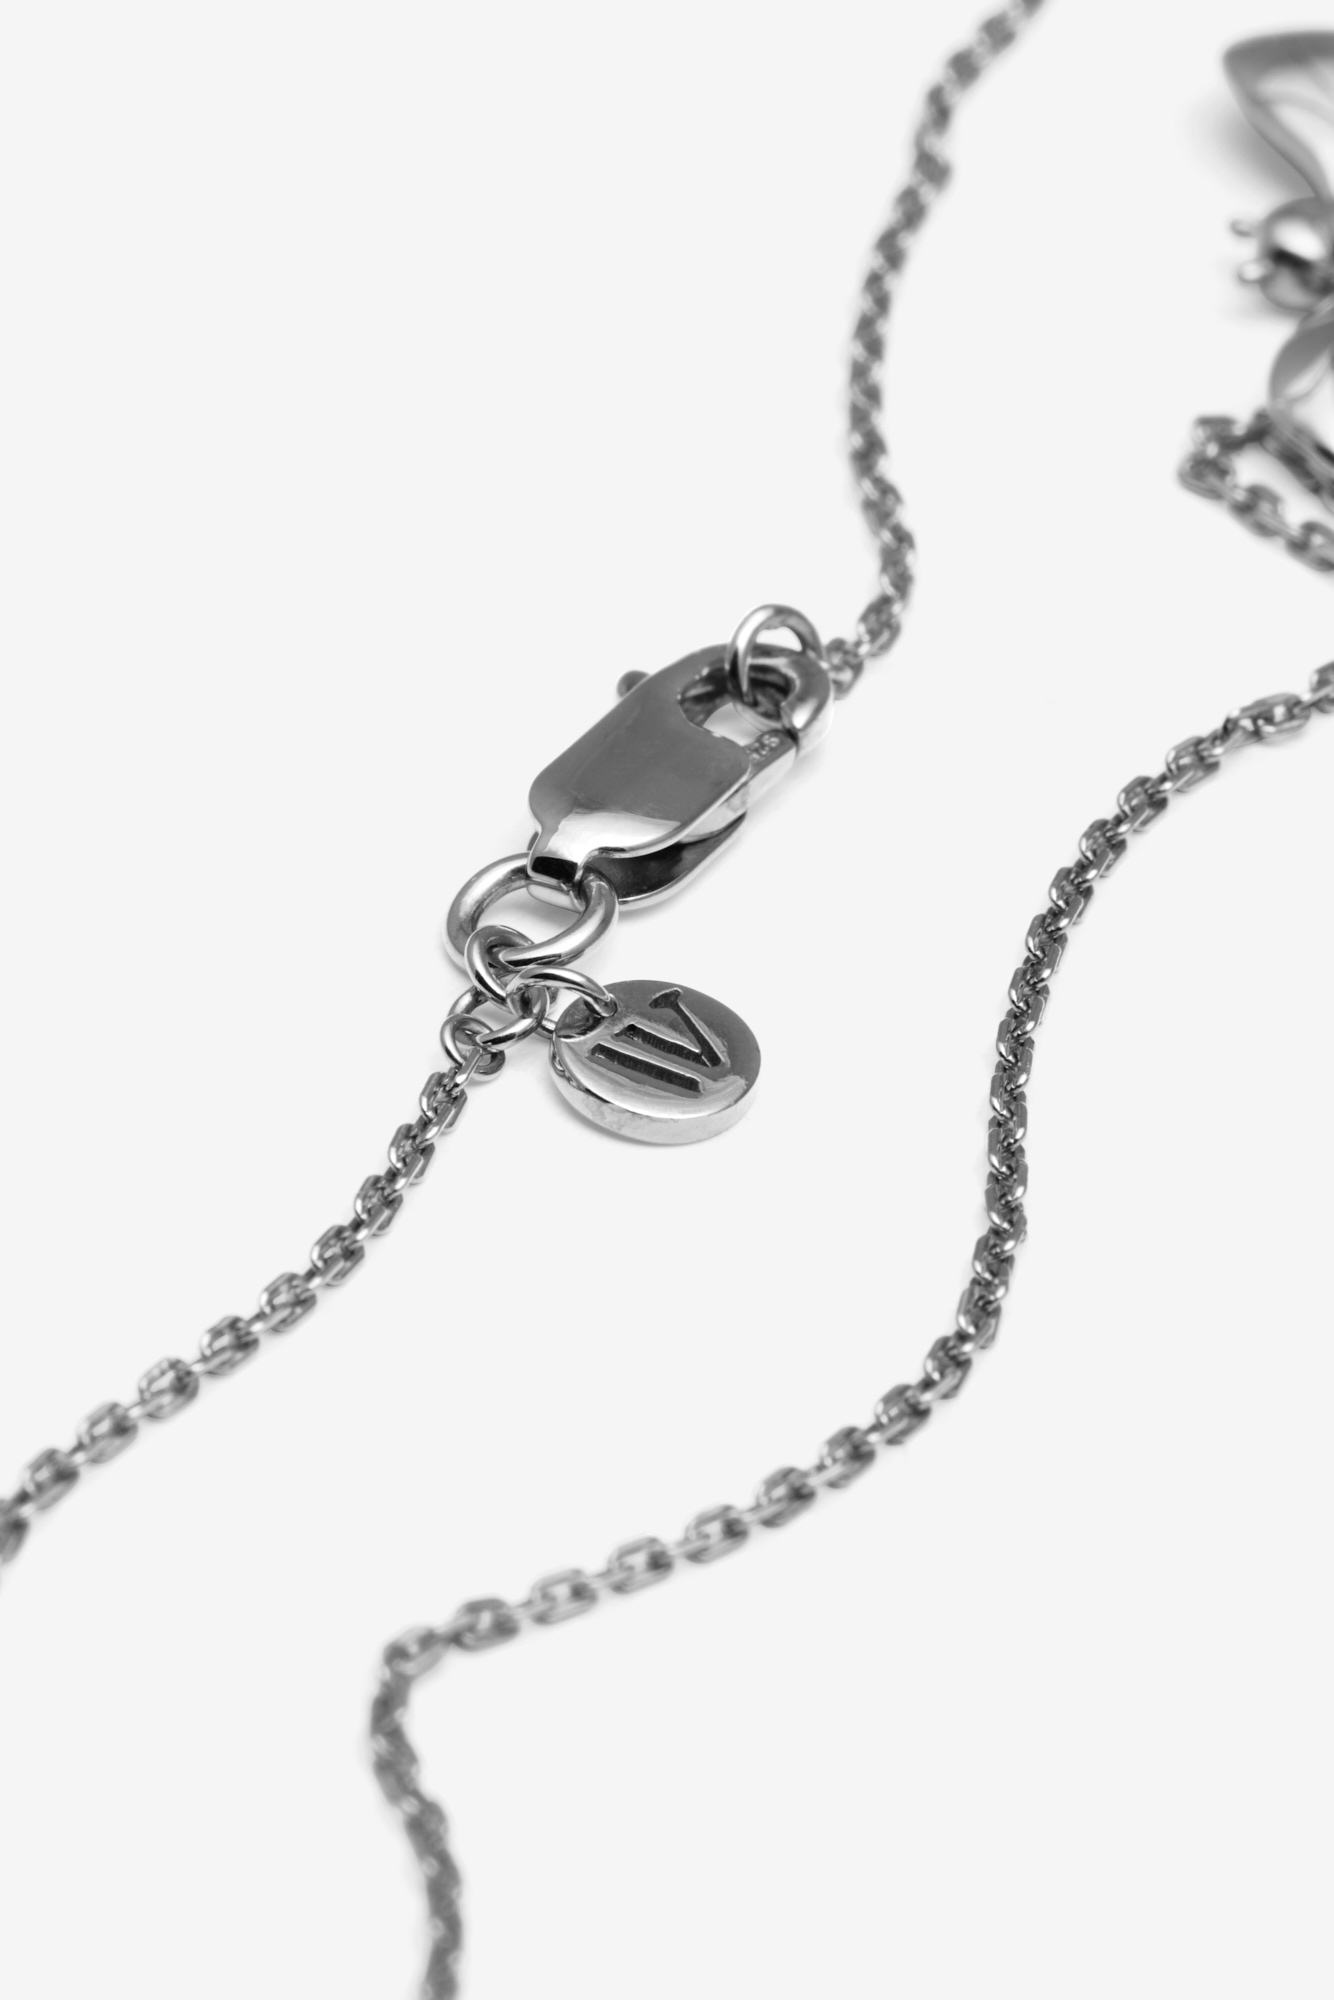 19-03-5-1-002-114-10_Bee Necklace_Silver_03